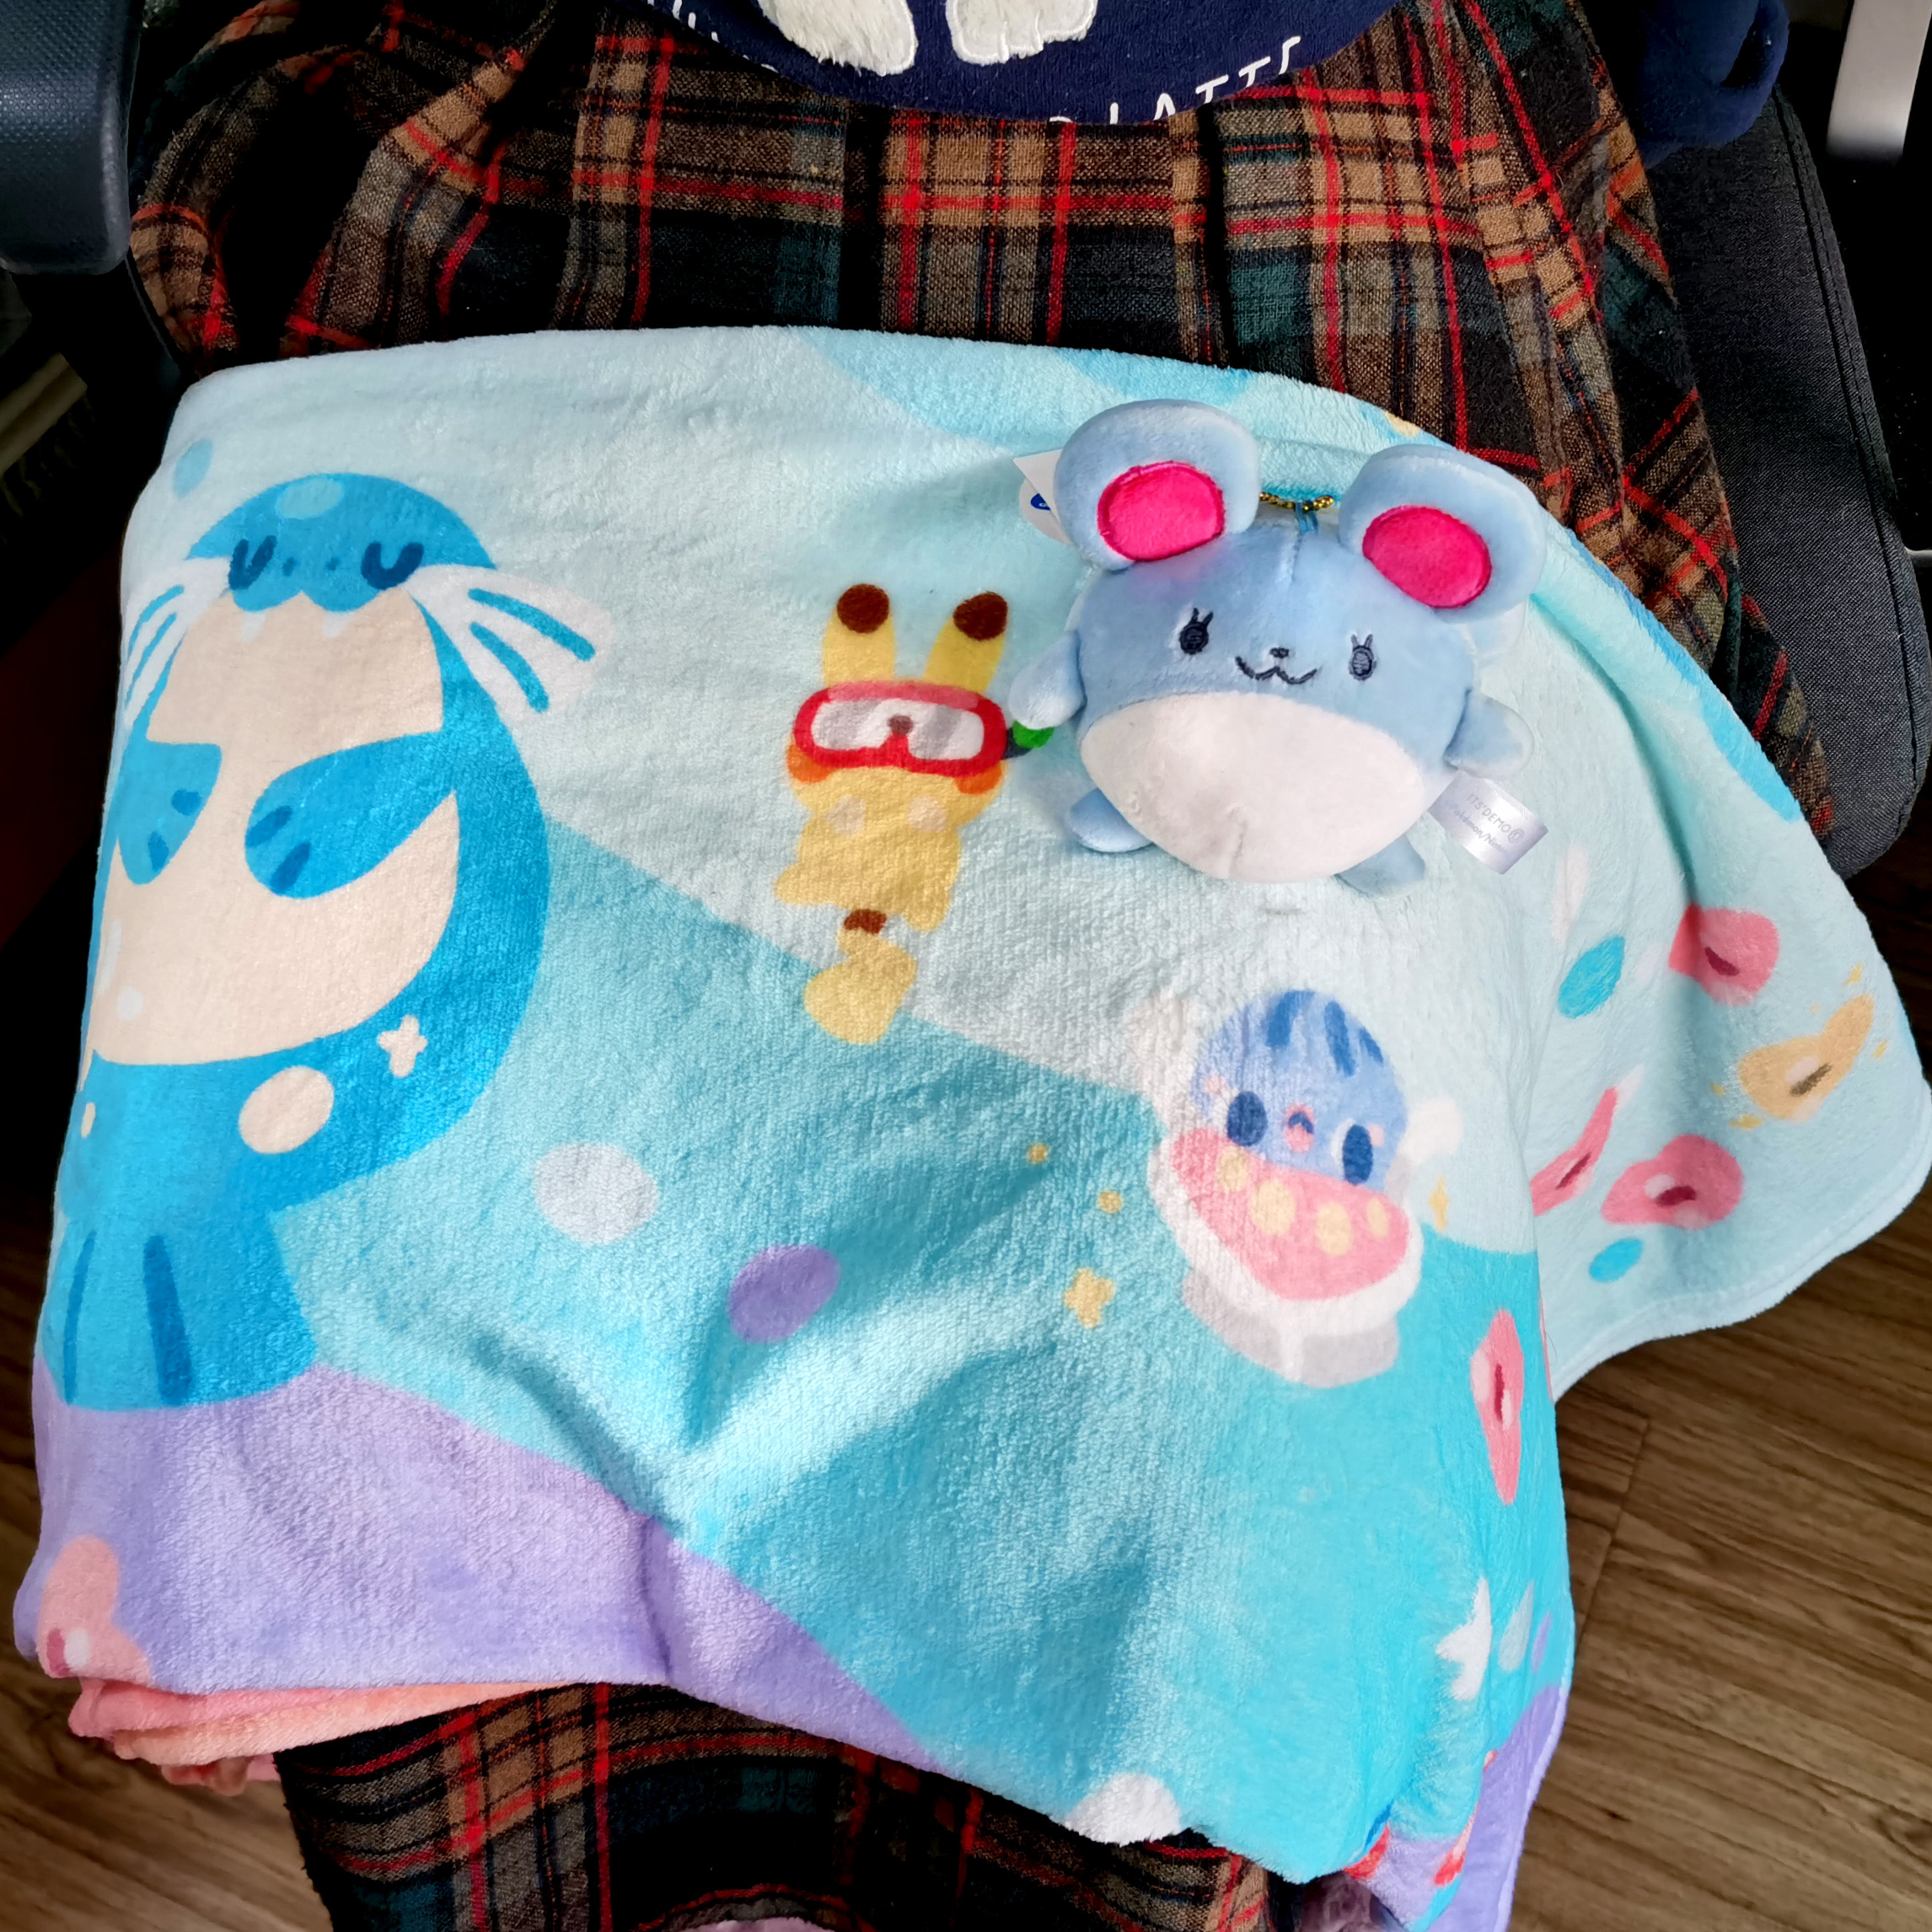 Whats the leisure blanket, the blanket, the Pikachu blanket